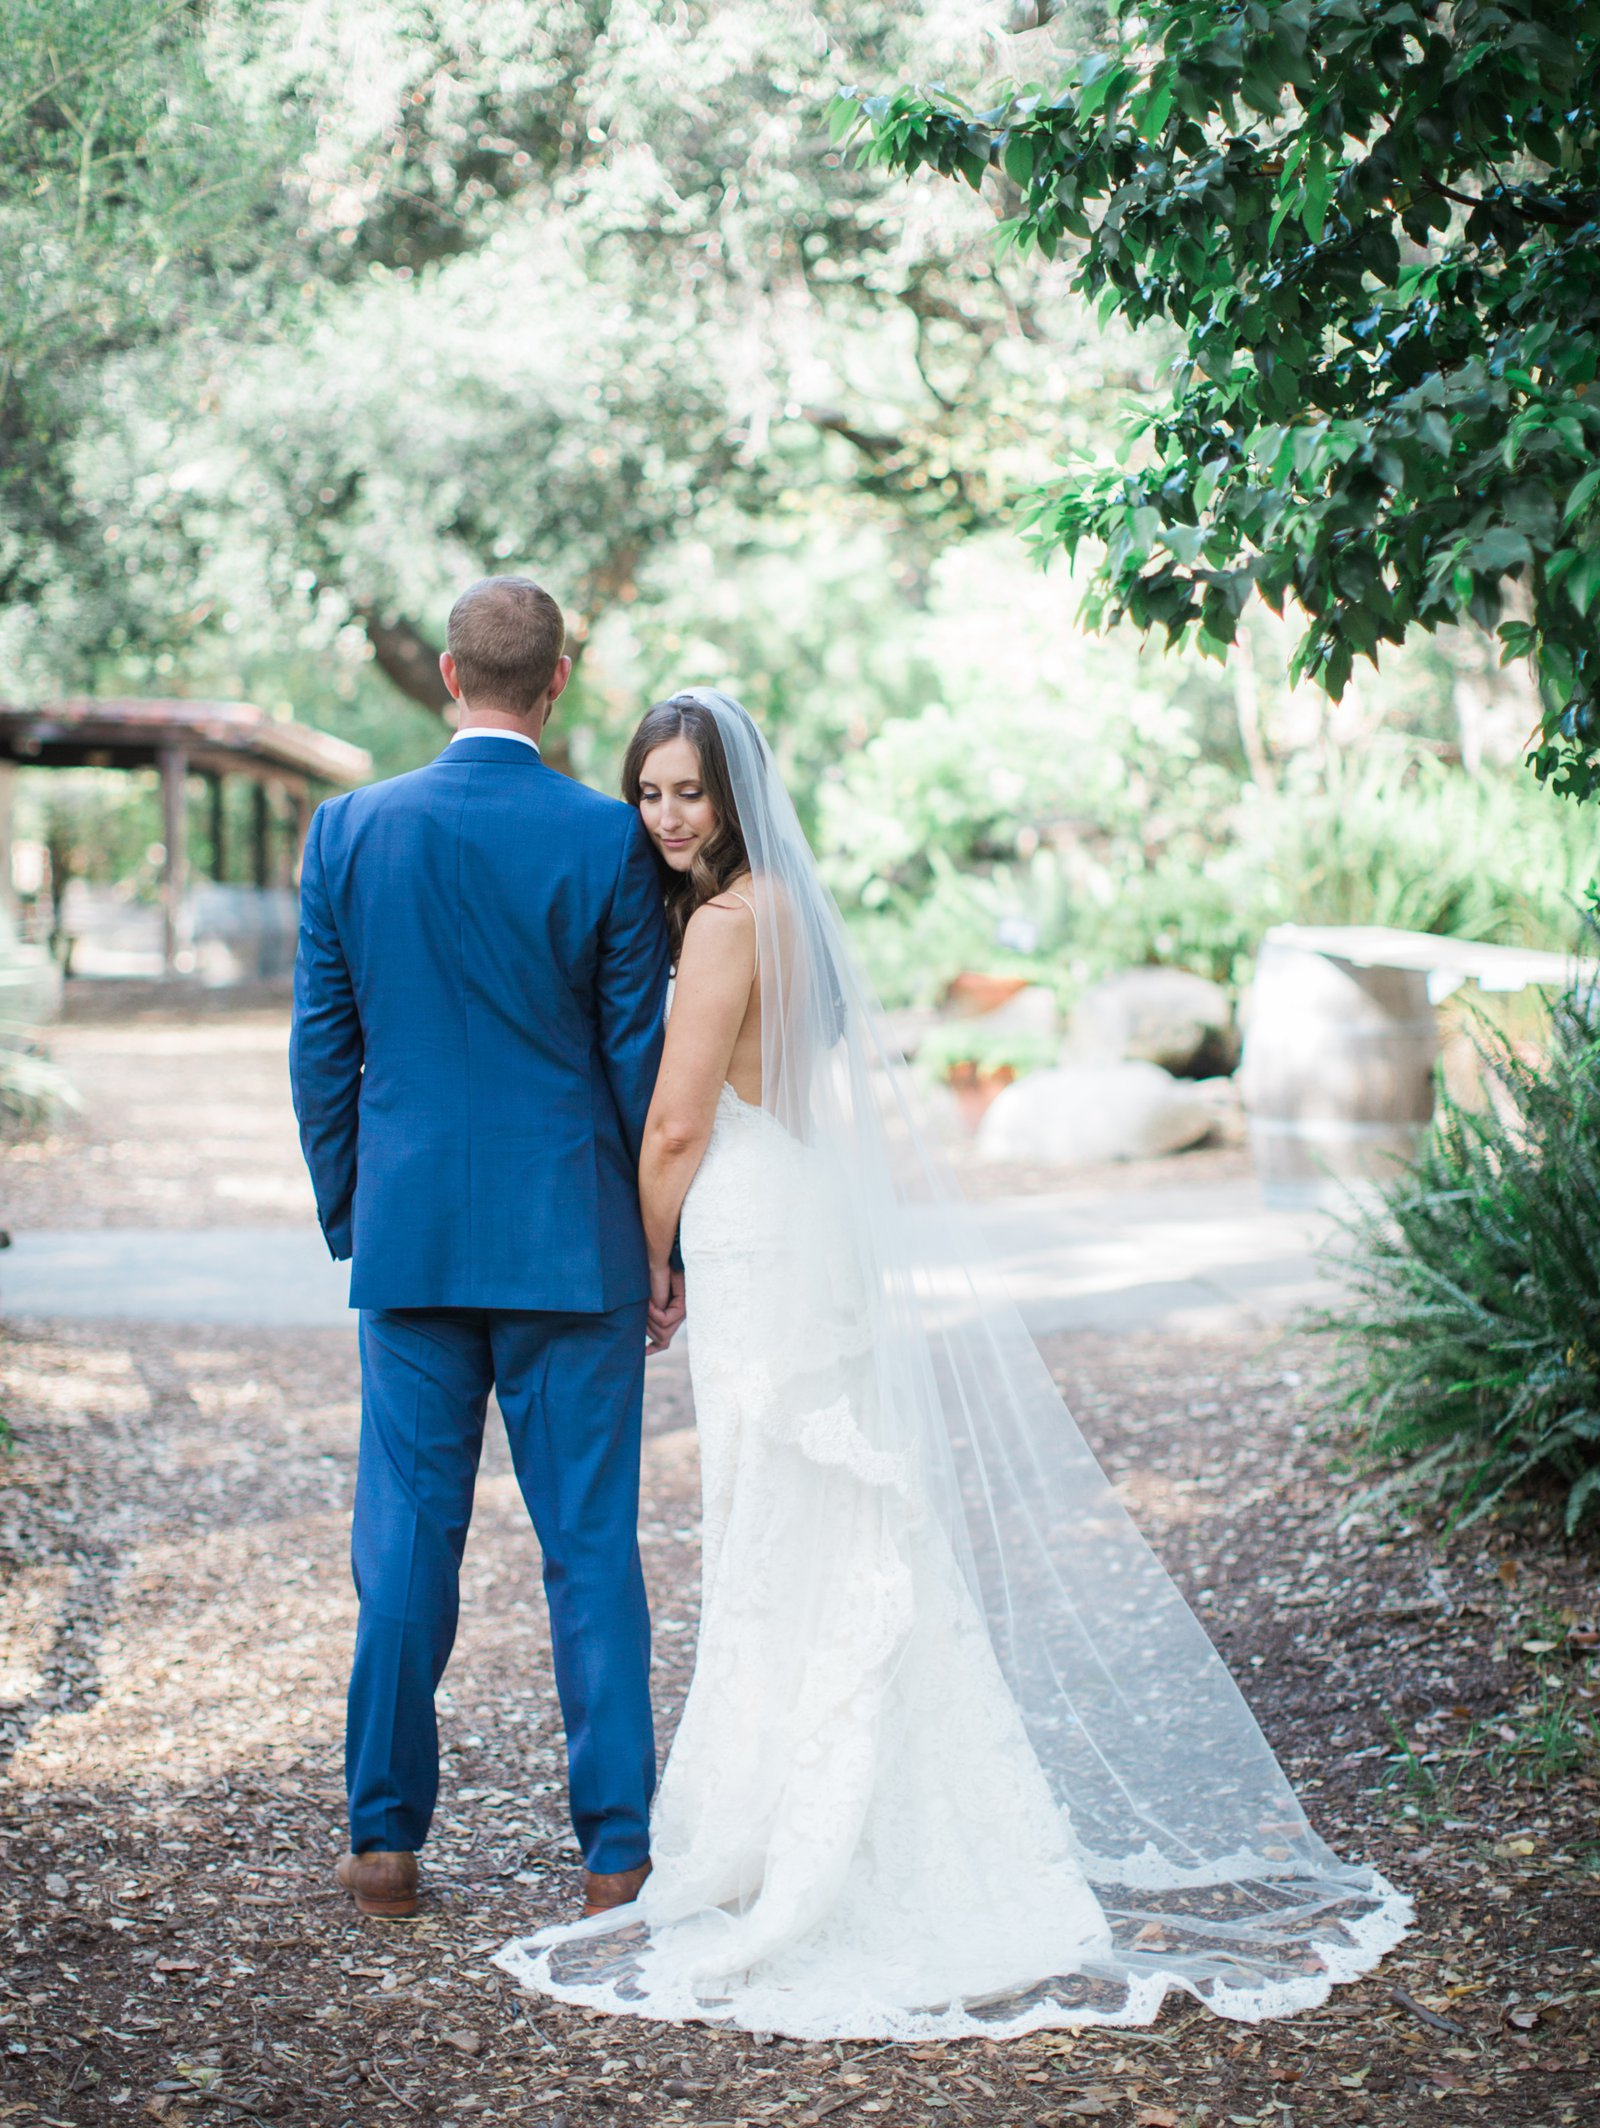 Newlyweds after the ceremony at The Santa Barbara museum of Natural history